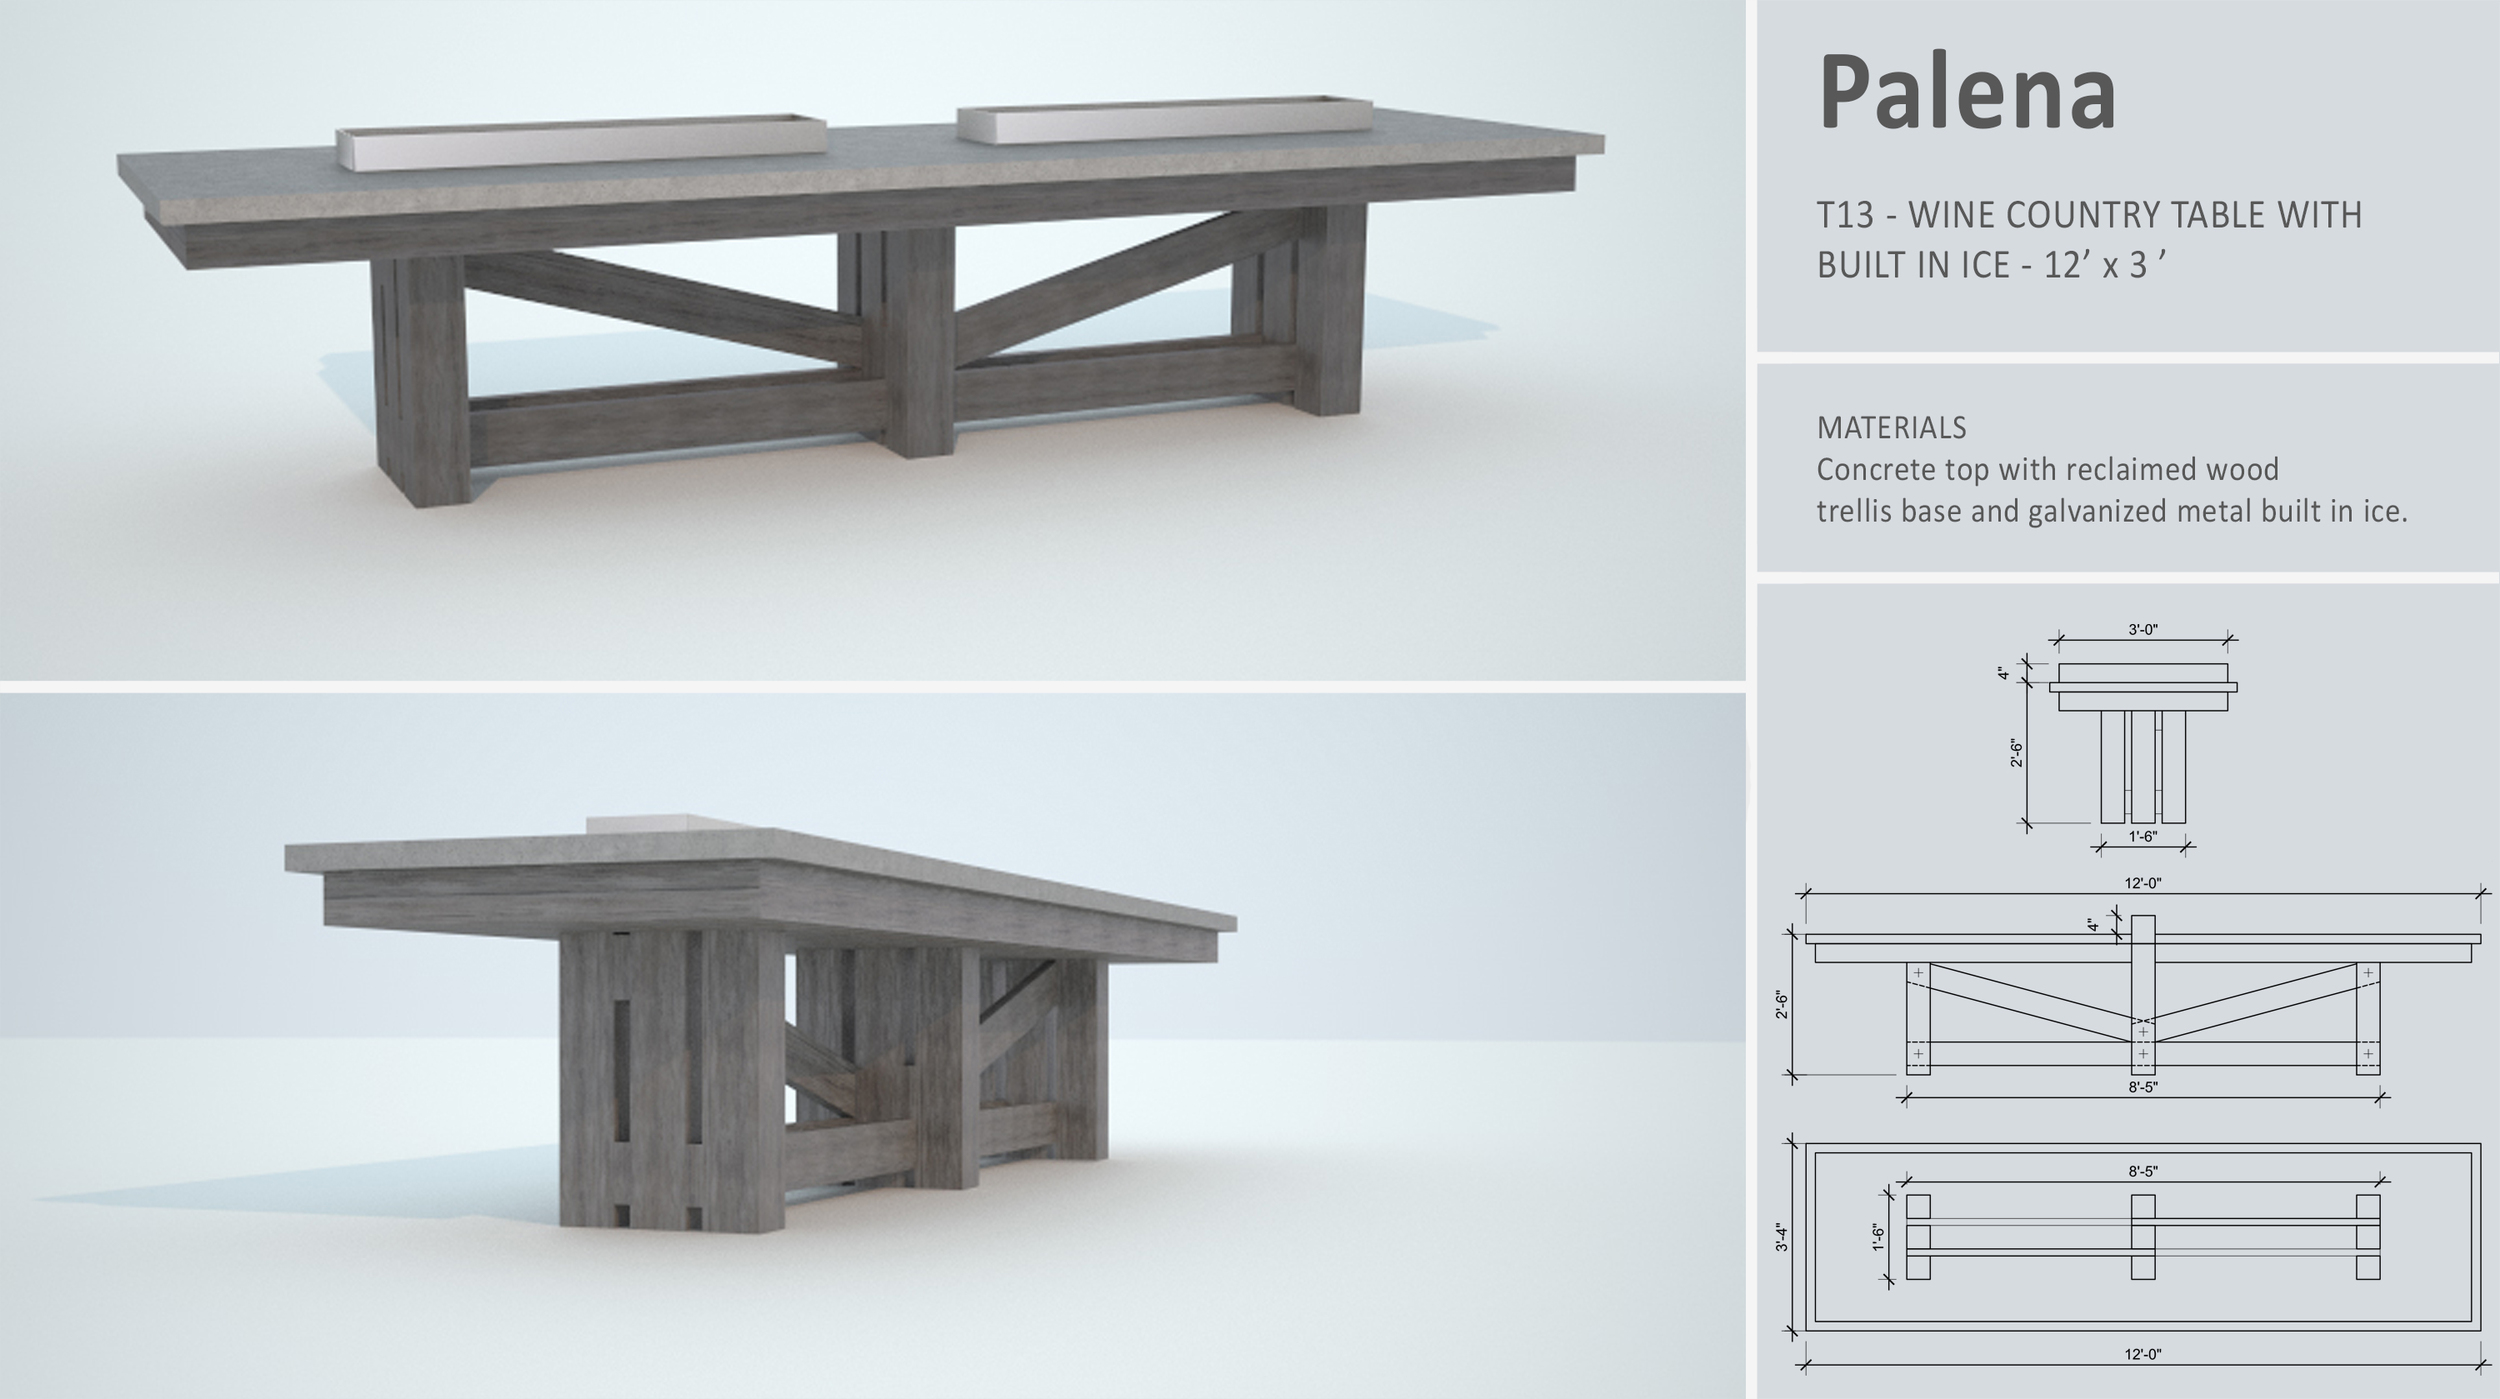 TECHNICAL SHEET TABLE T13 -PALENA.jpg